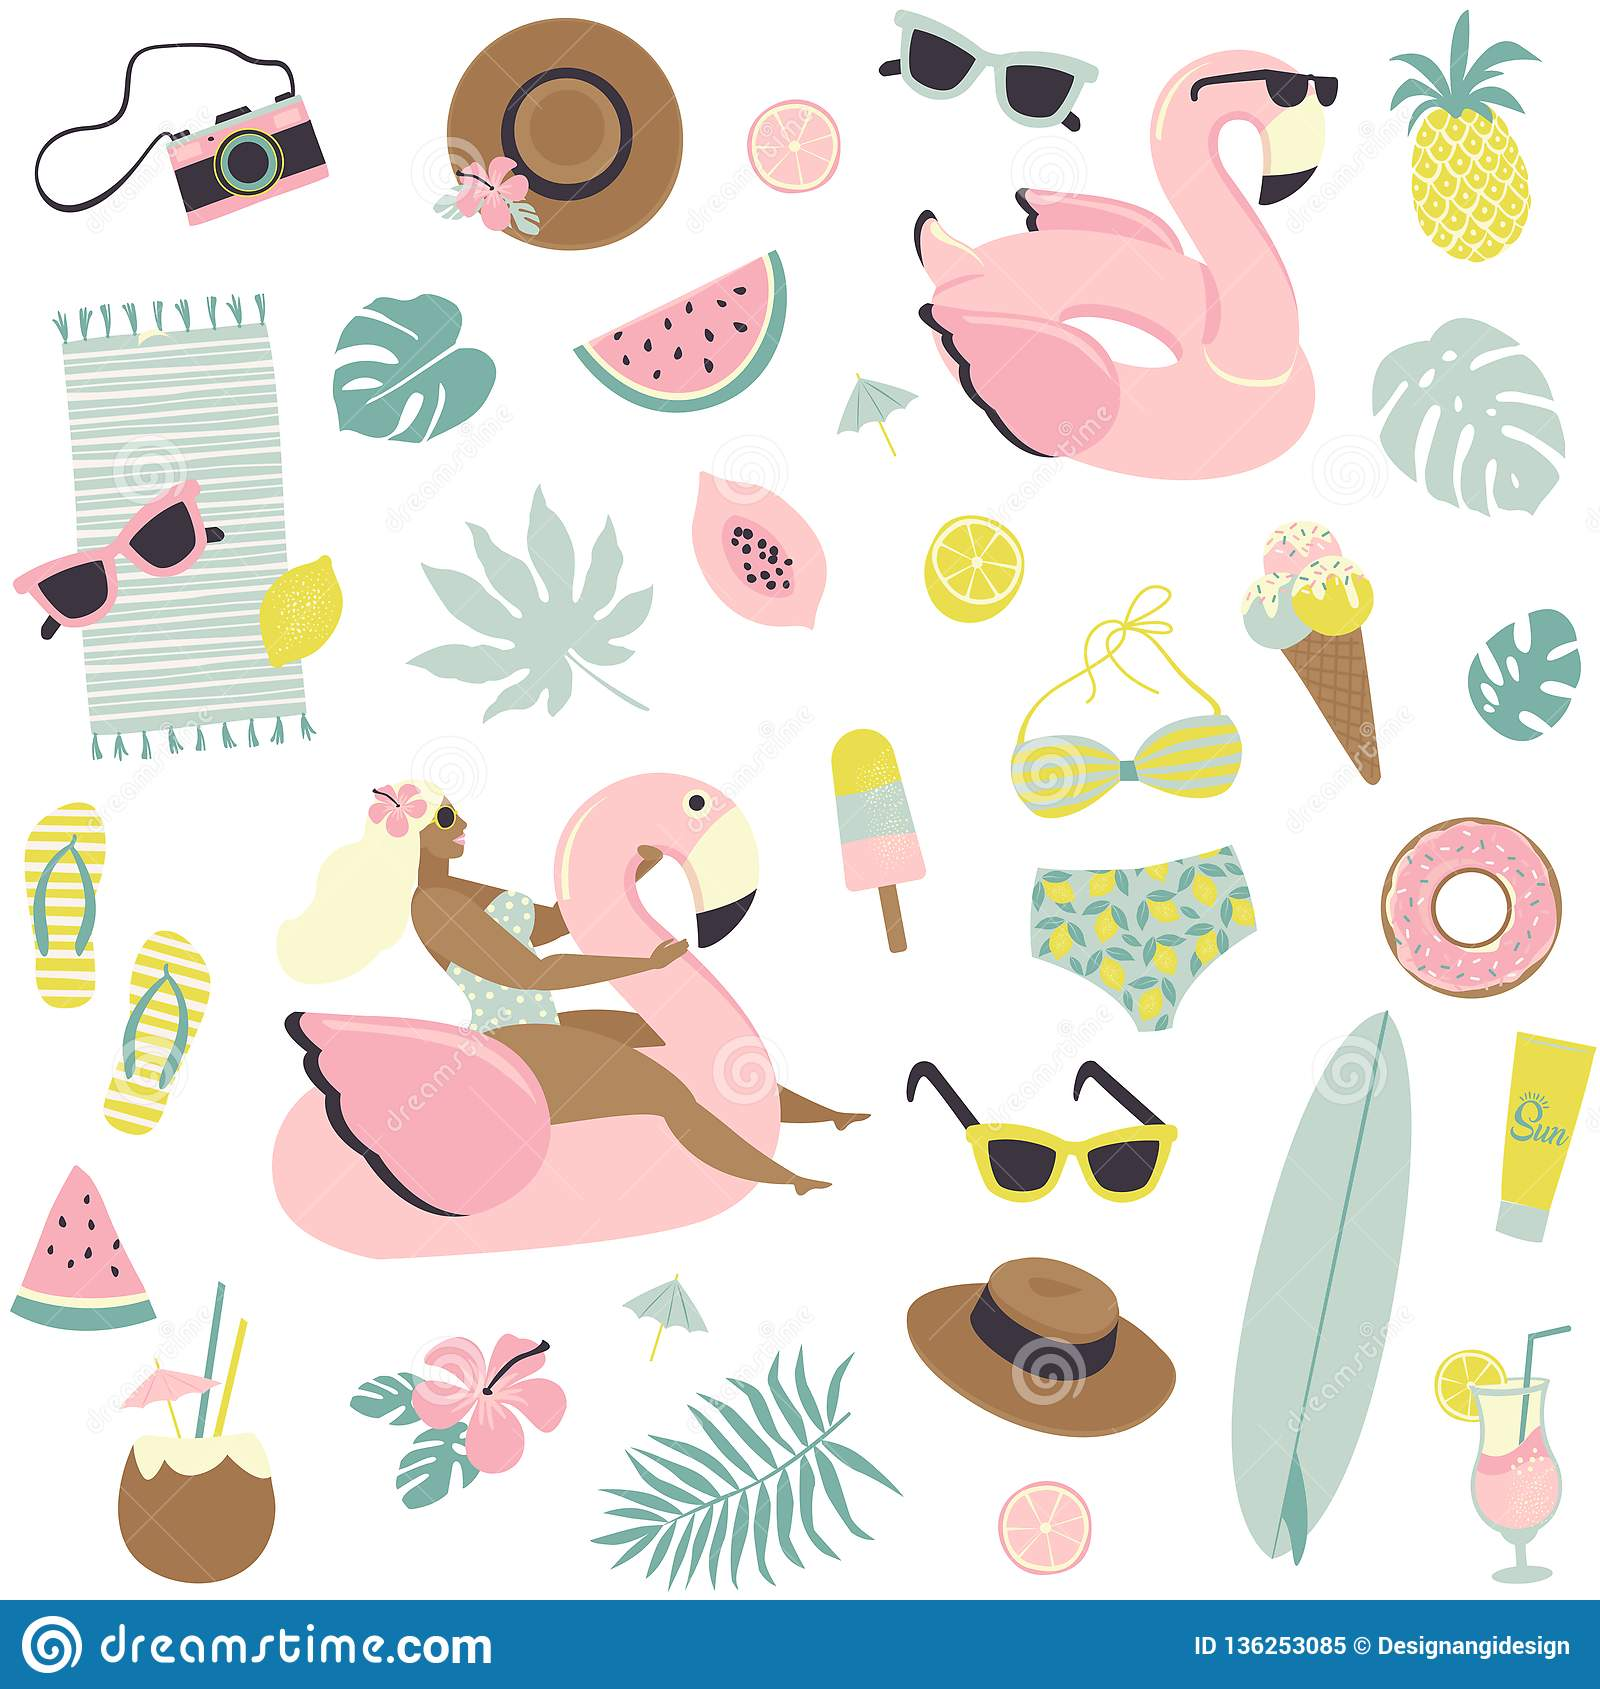 Cute summer seamless pattern fruits, drinks, ice cream, sunglasses, palm leaves and flamingo inflatable swimming pool